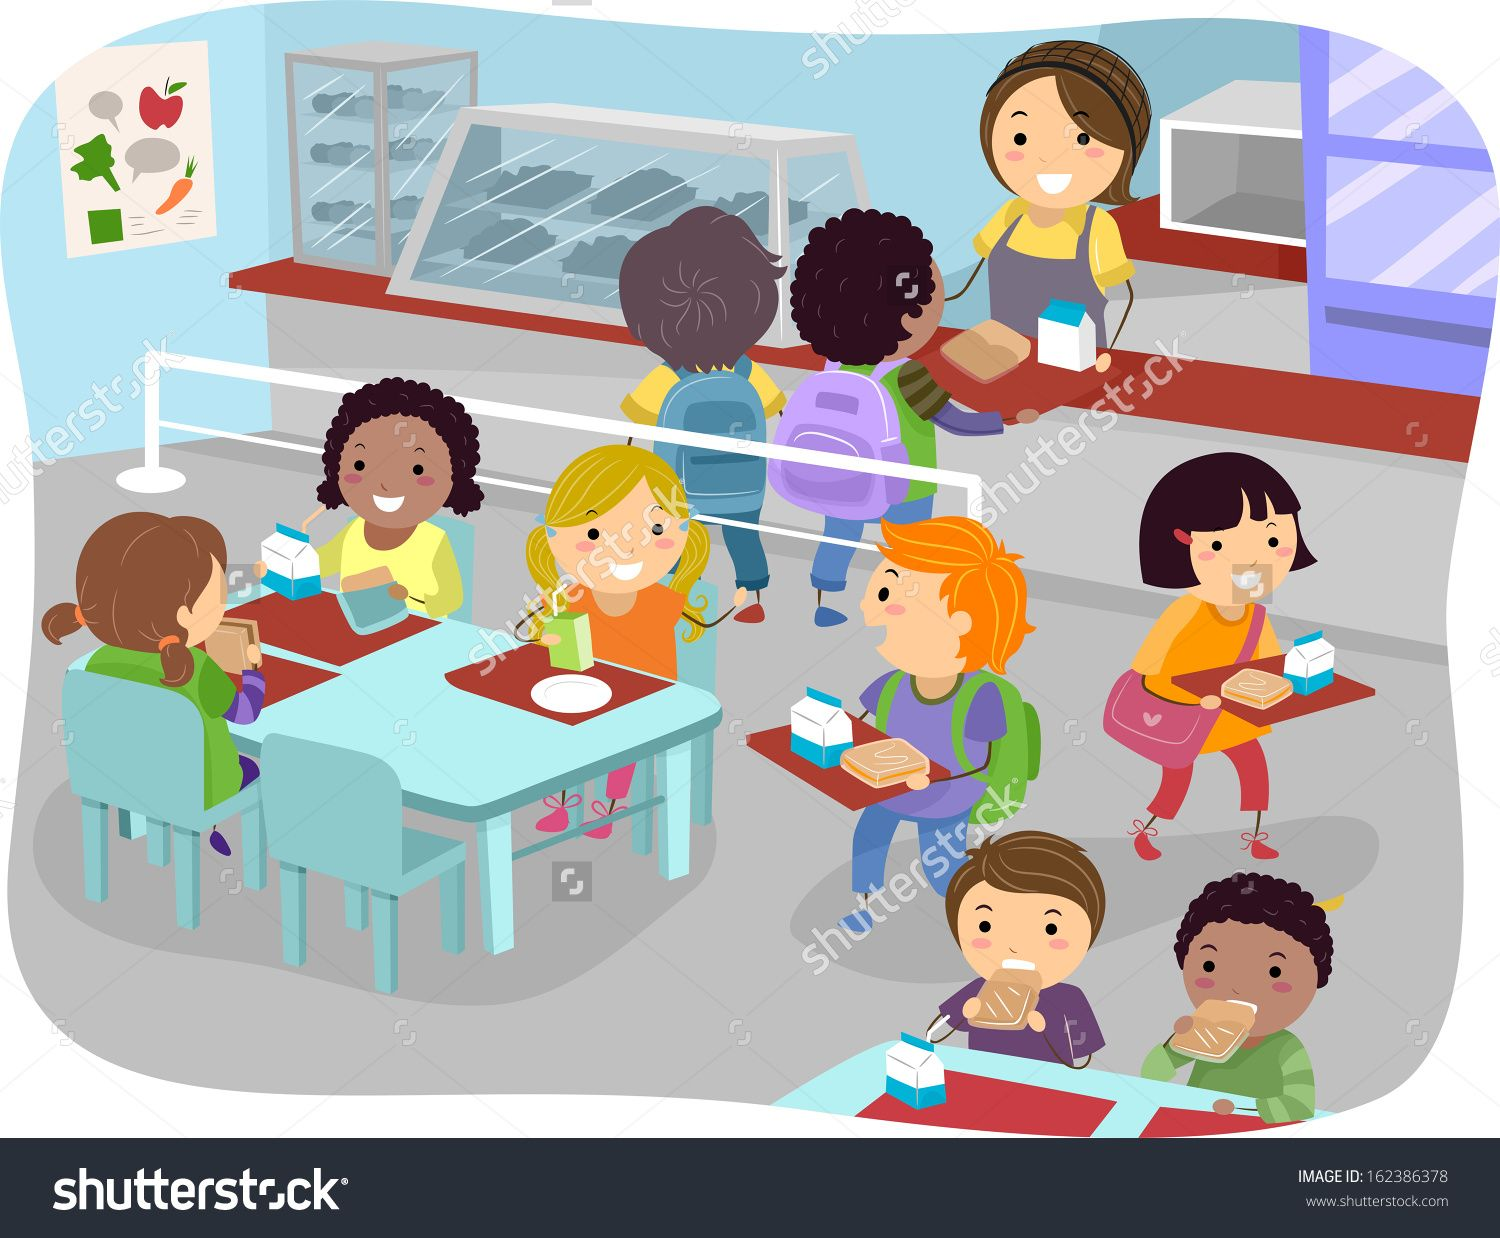 Illustration Of Kids In A Canteen Buying And Eating Lunch.